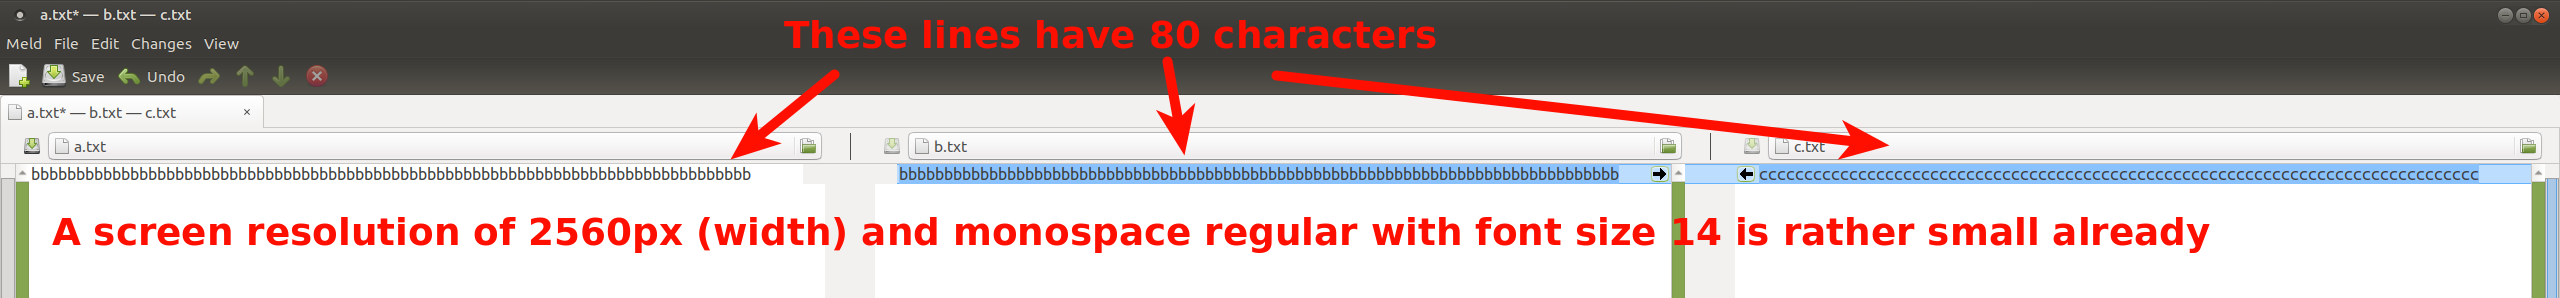 3-way merge with 80 character lines